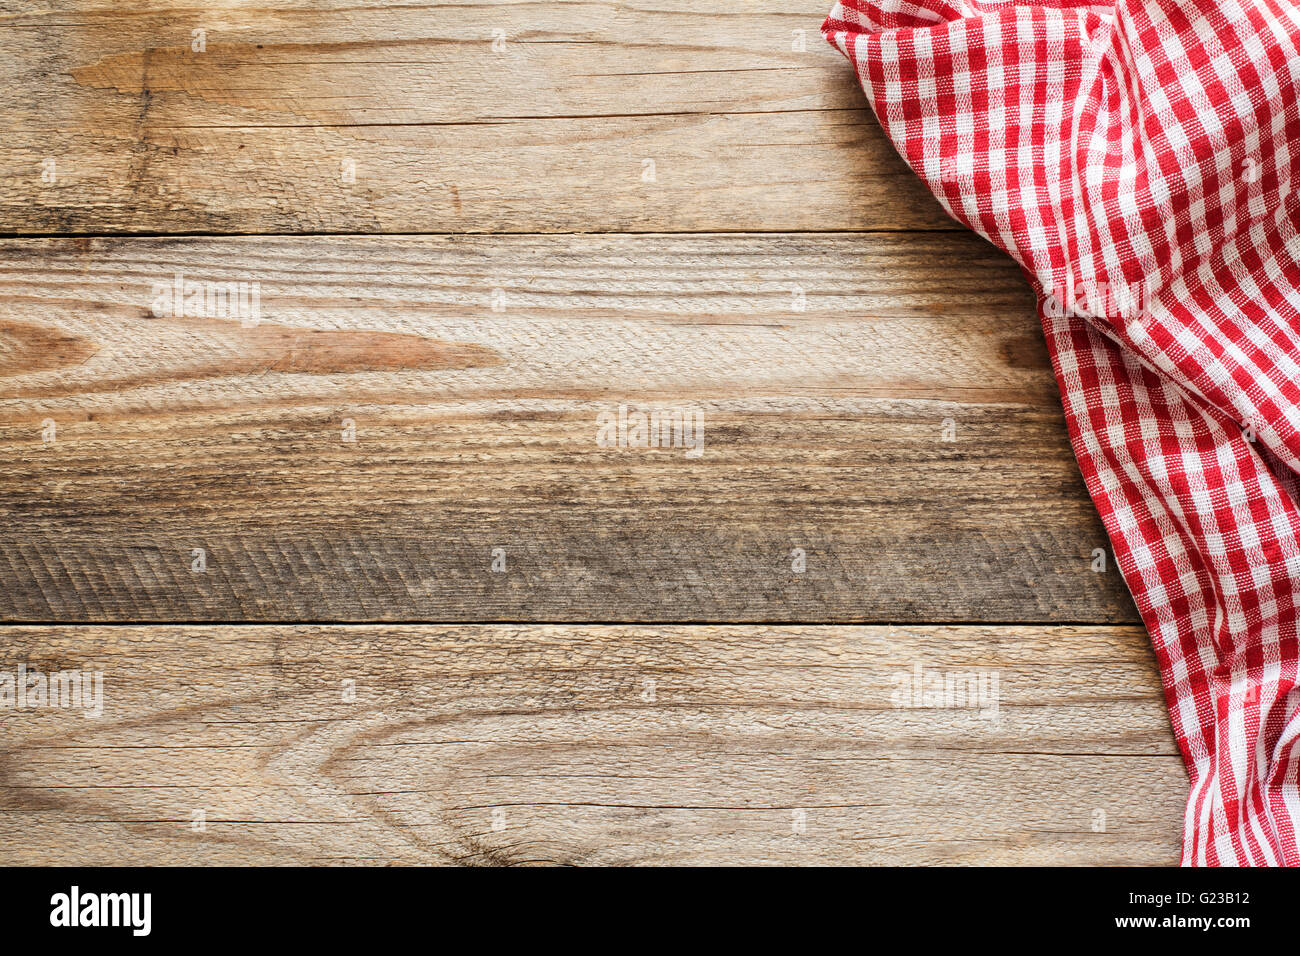 Wooden Background With Textile Cooking Food Pizza